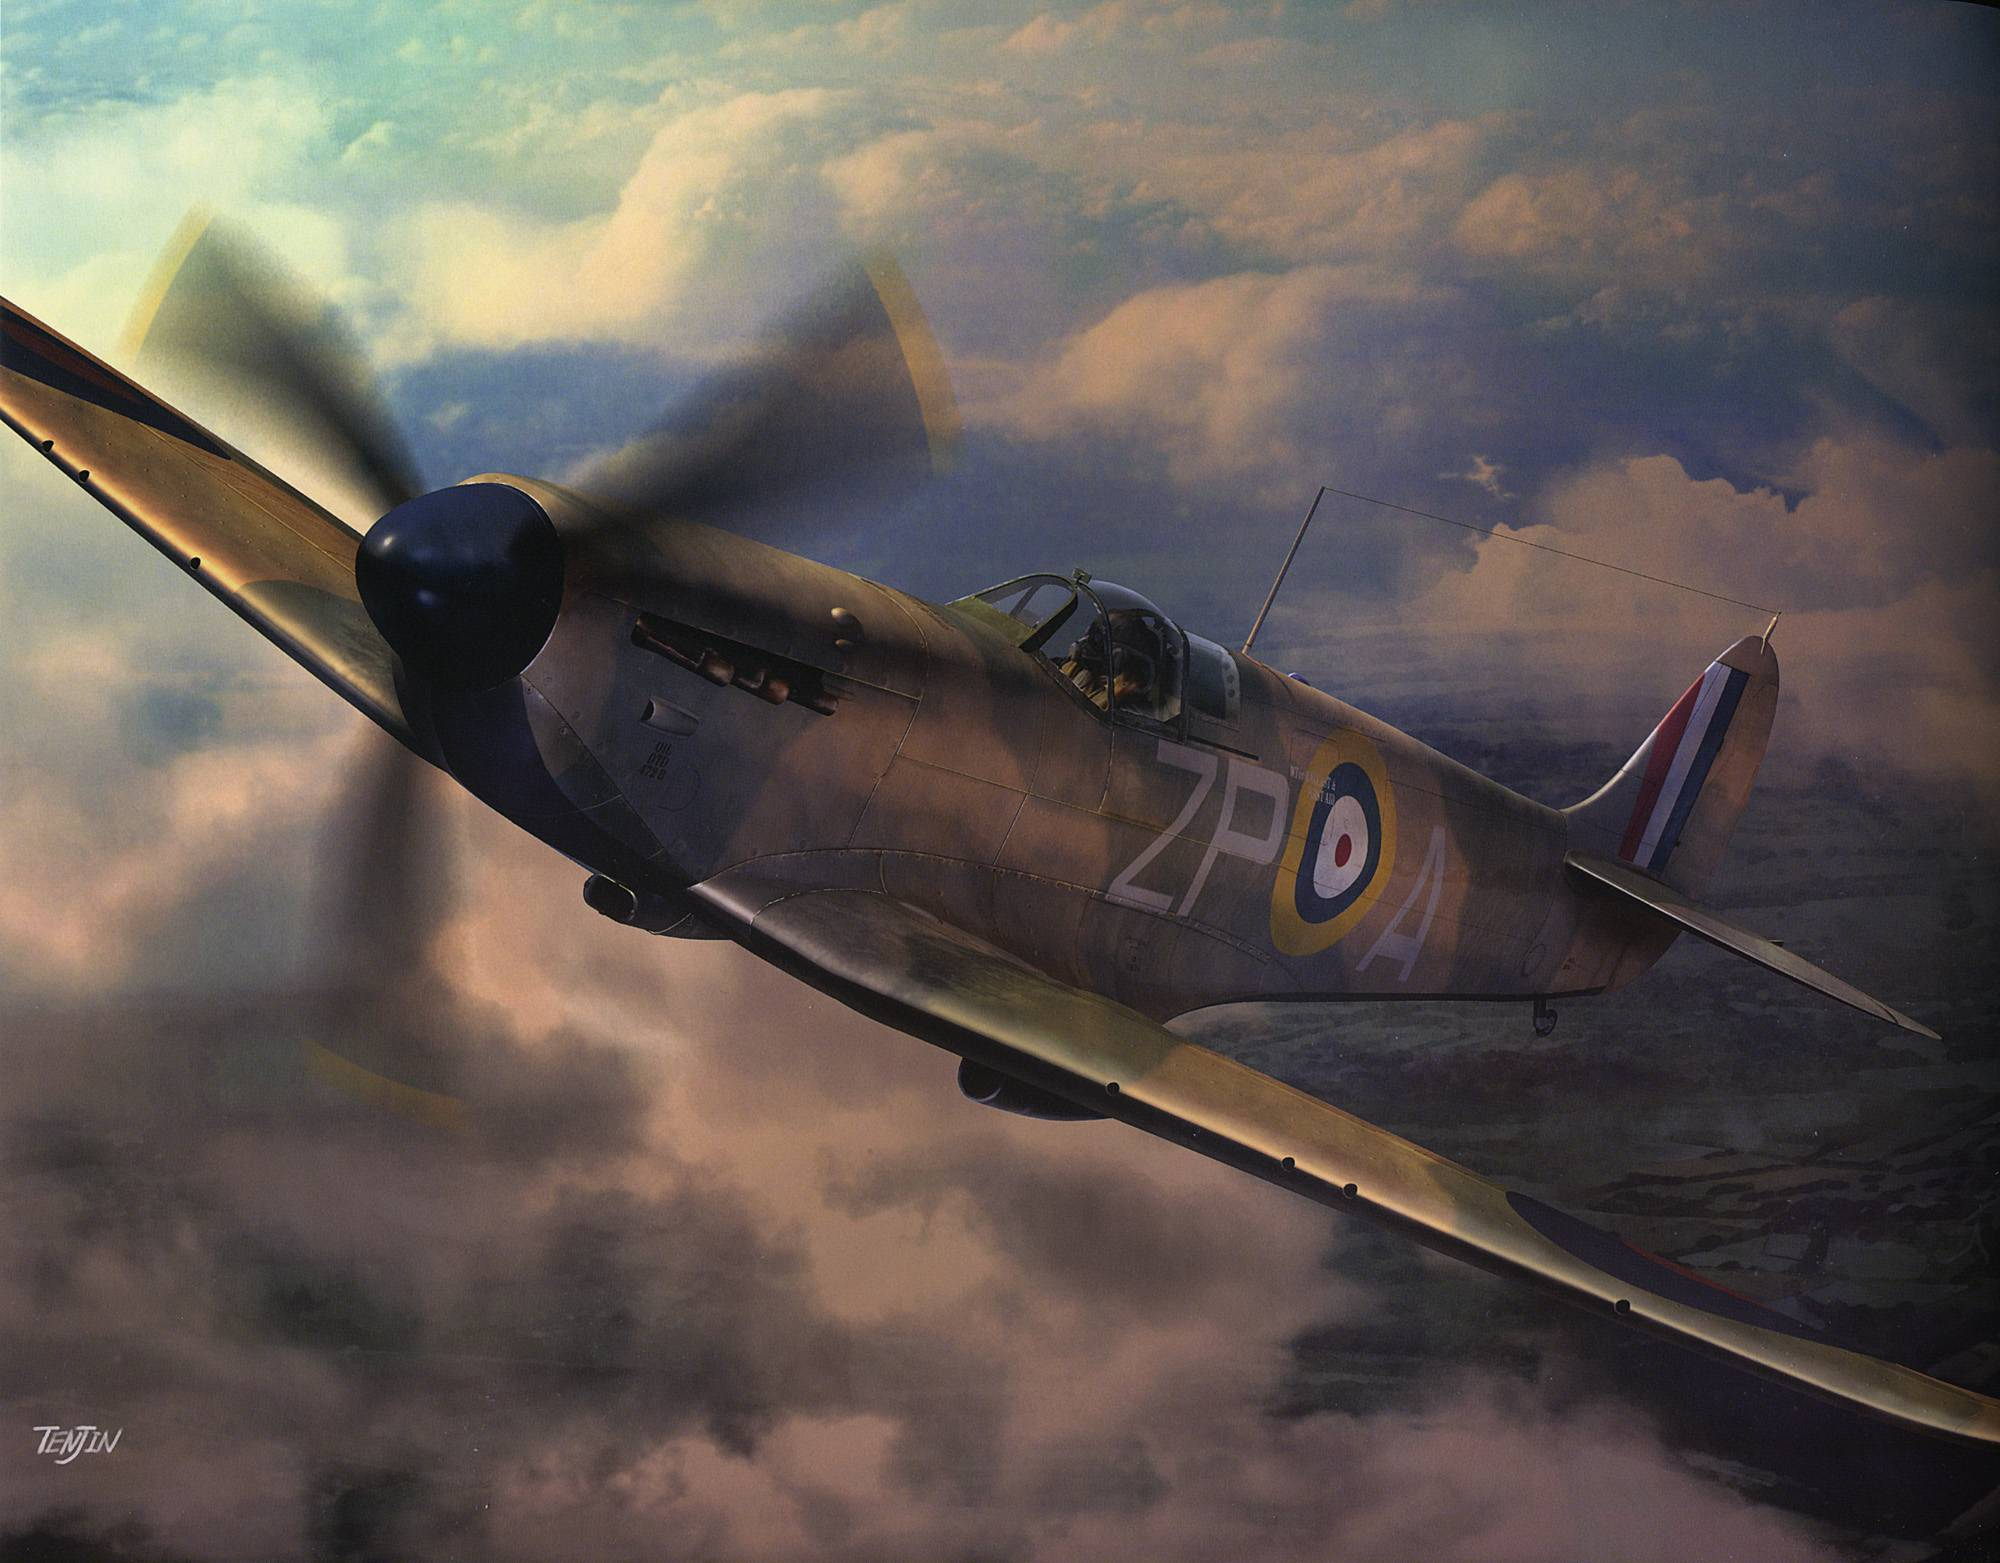 spitfire does anyone have good ww2 plane wallpapers wallpaper 2000x1563